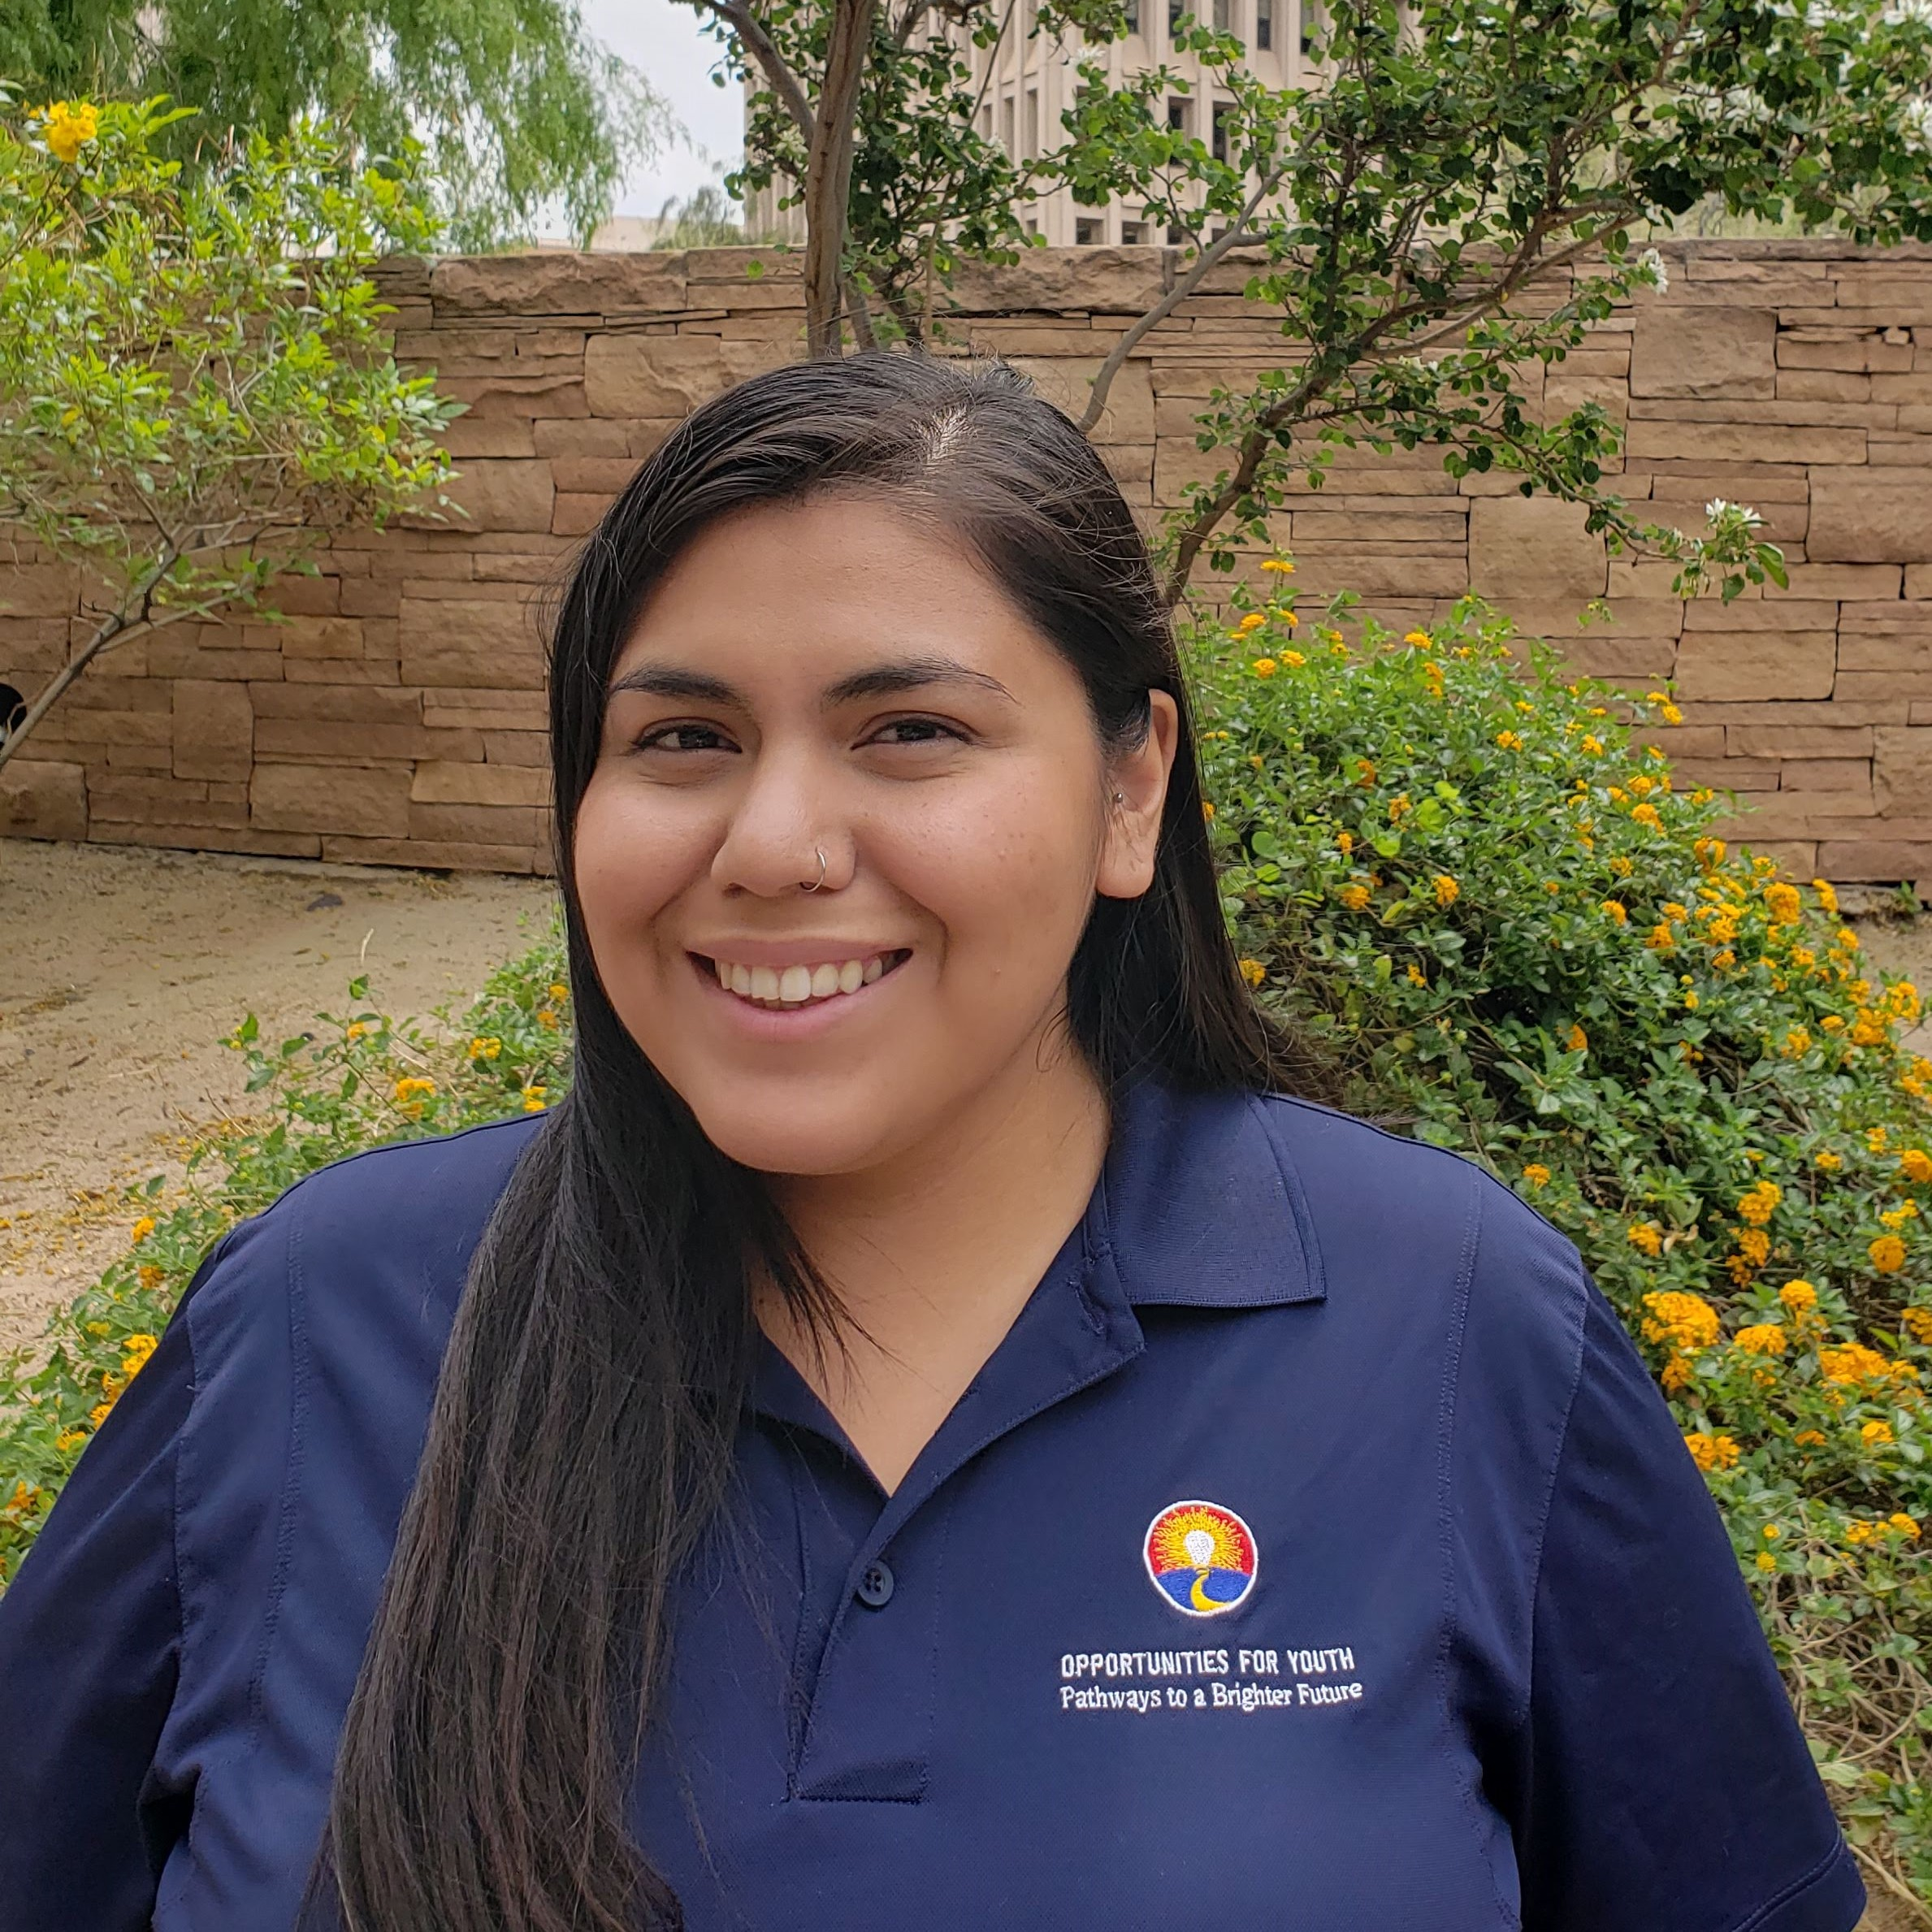 Channtal Polanco   Reengagement Specialist   Channtal Polanco joined Opportunities for Youth in September of 2018 as an AmeriCorps Public Ally of Arizona. Channtal is a first generation college student attending Phoenix College to obtain her Associates in Arts. As a former opportunity youth herself, Channtal yearns to make a difference in her community while helping others grow alongside her in the process. When she concludes her term of service with Public Allies, Channtal plans to continue her education at the Arizona State University School of Social Work. Opportunities for Youth has helped Channtal see herself as a leader in her community, igniting her passion to serve and uplift those around her.    Channtal.Polanco@asu.edu         (602) 529-7810